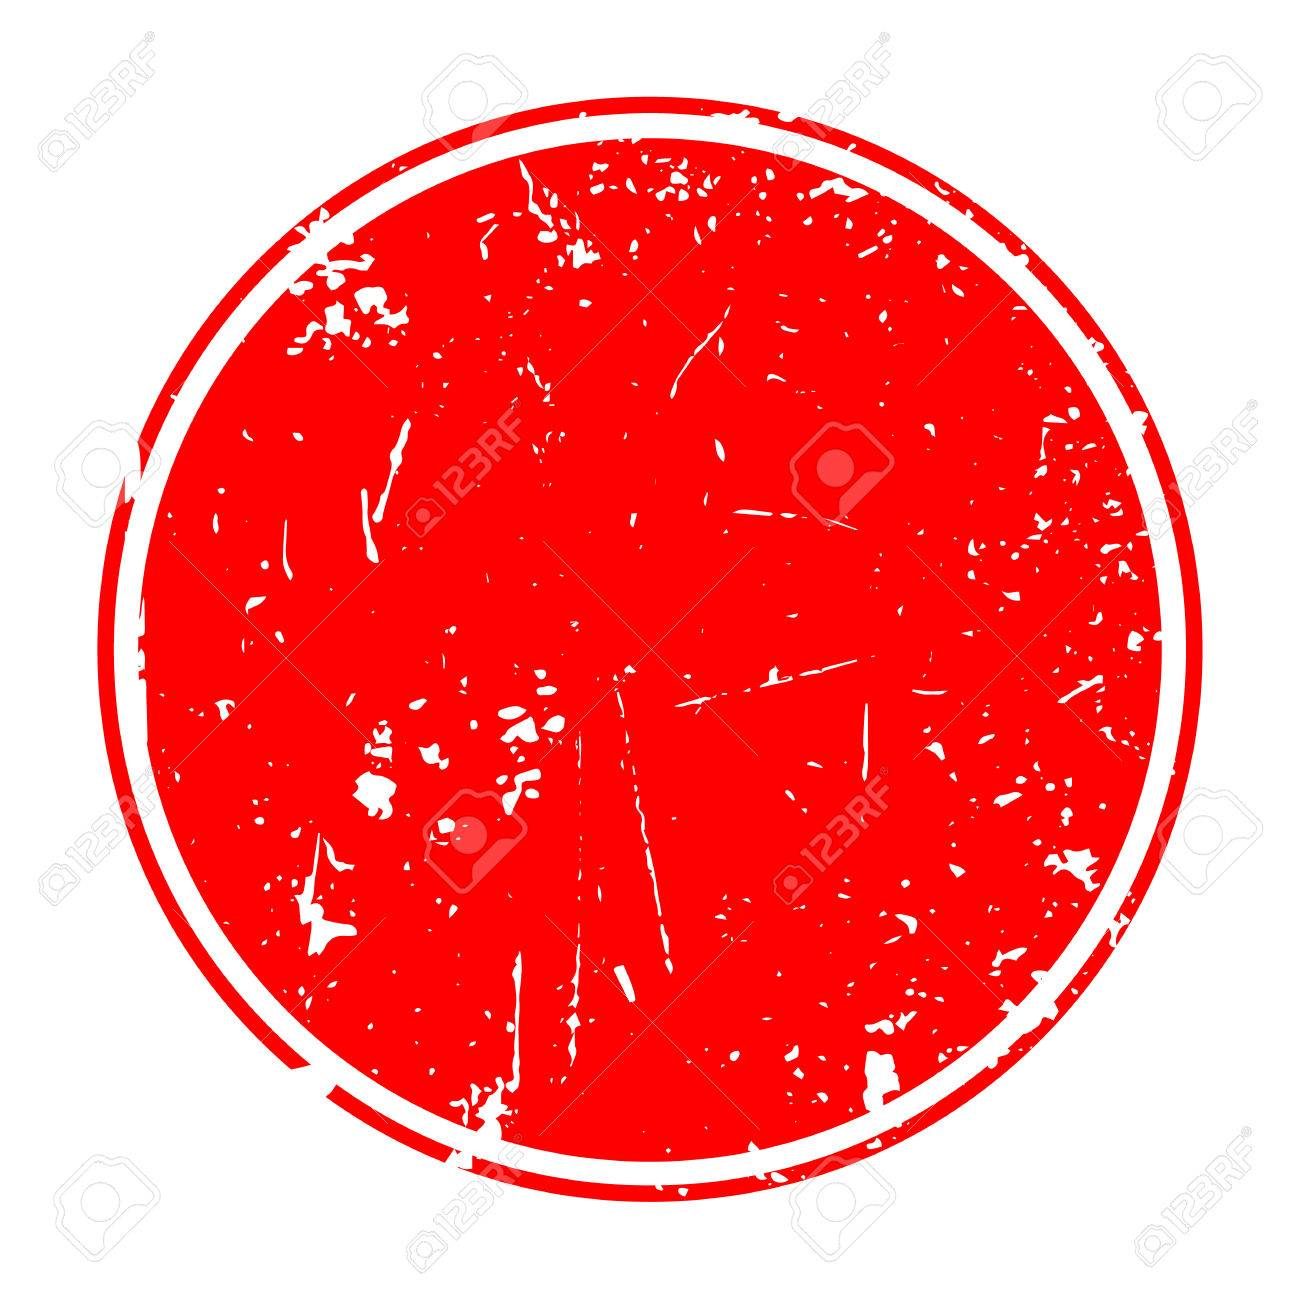 Grunge red blank rubber stamp template.